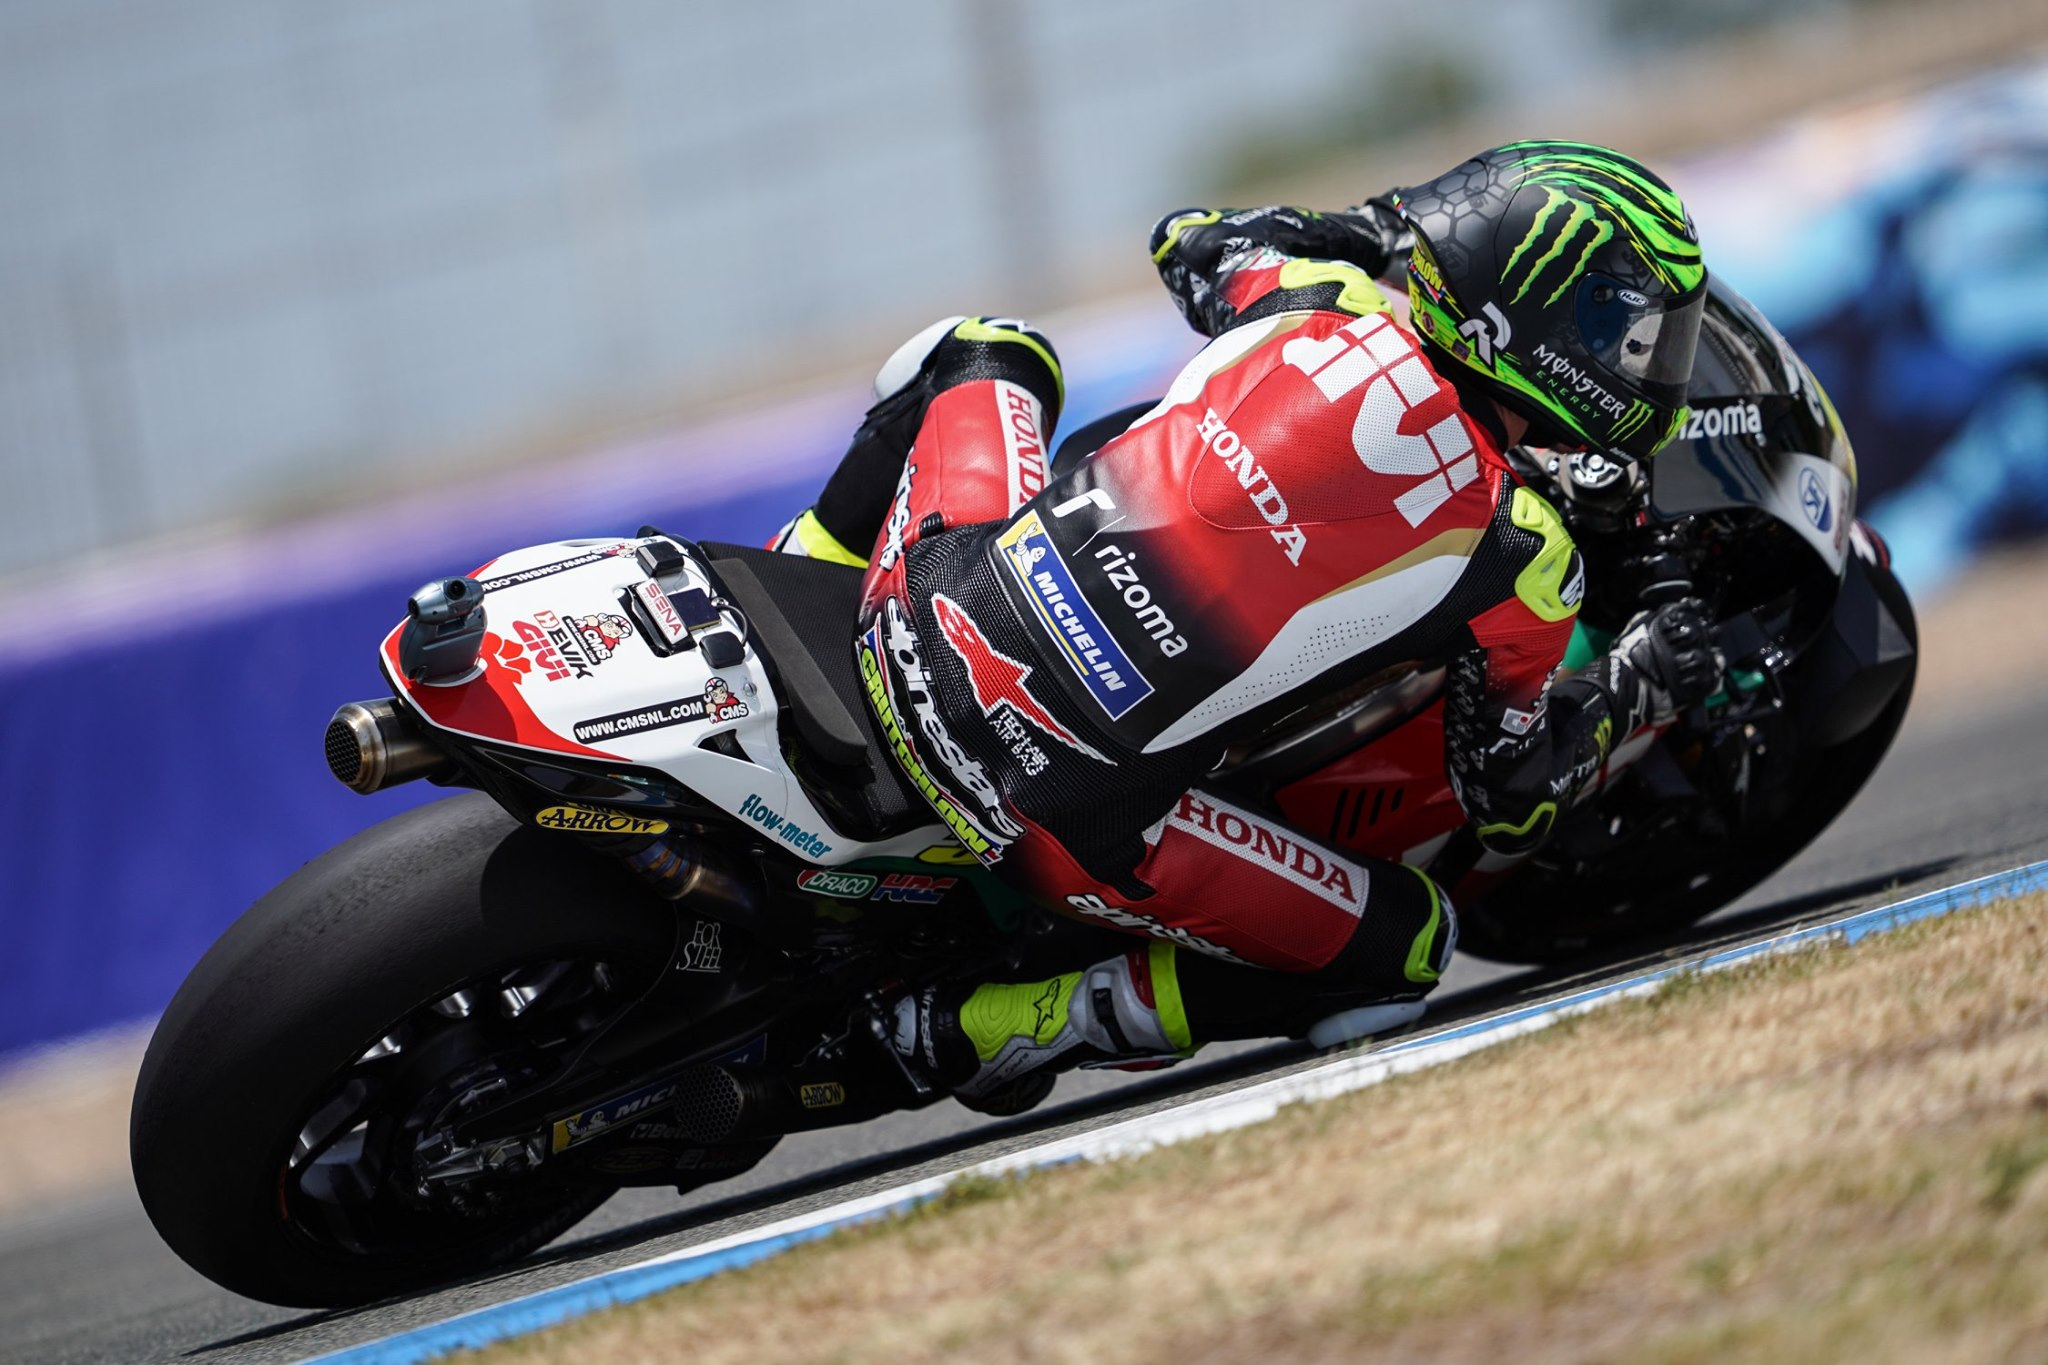 Crutchlow third overall on positive first day of MotoGP racing